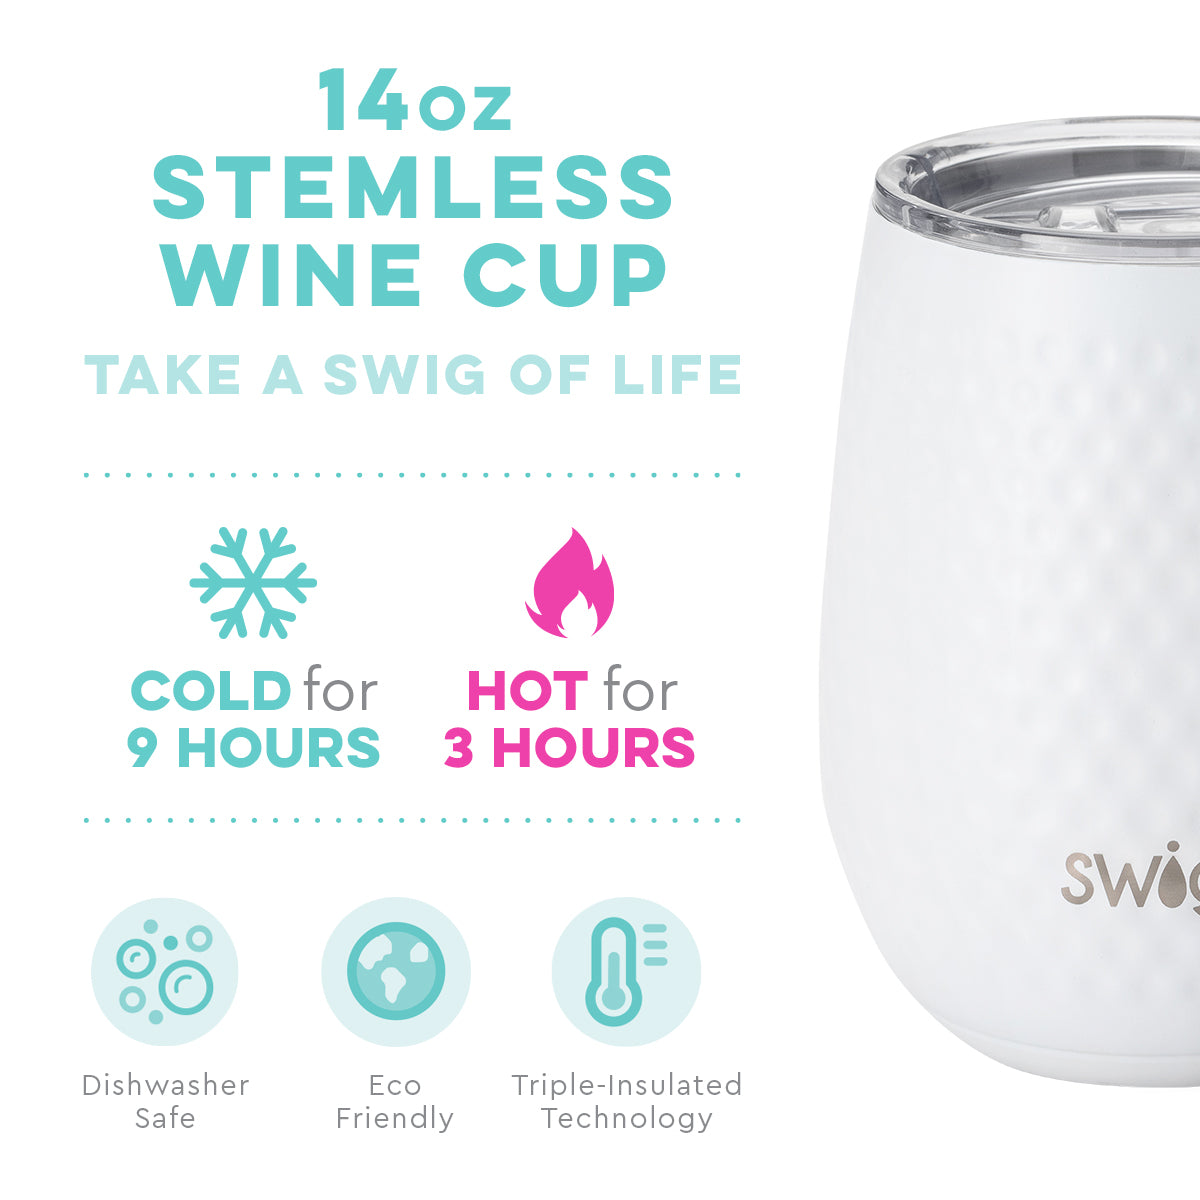 Swig - 14oz Stemless Wine Cup  is dishwasher sale, cold for 9 Hours and Hot For 3 Hours